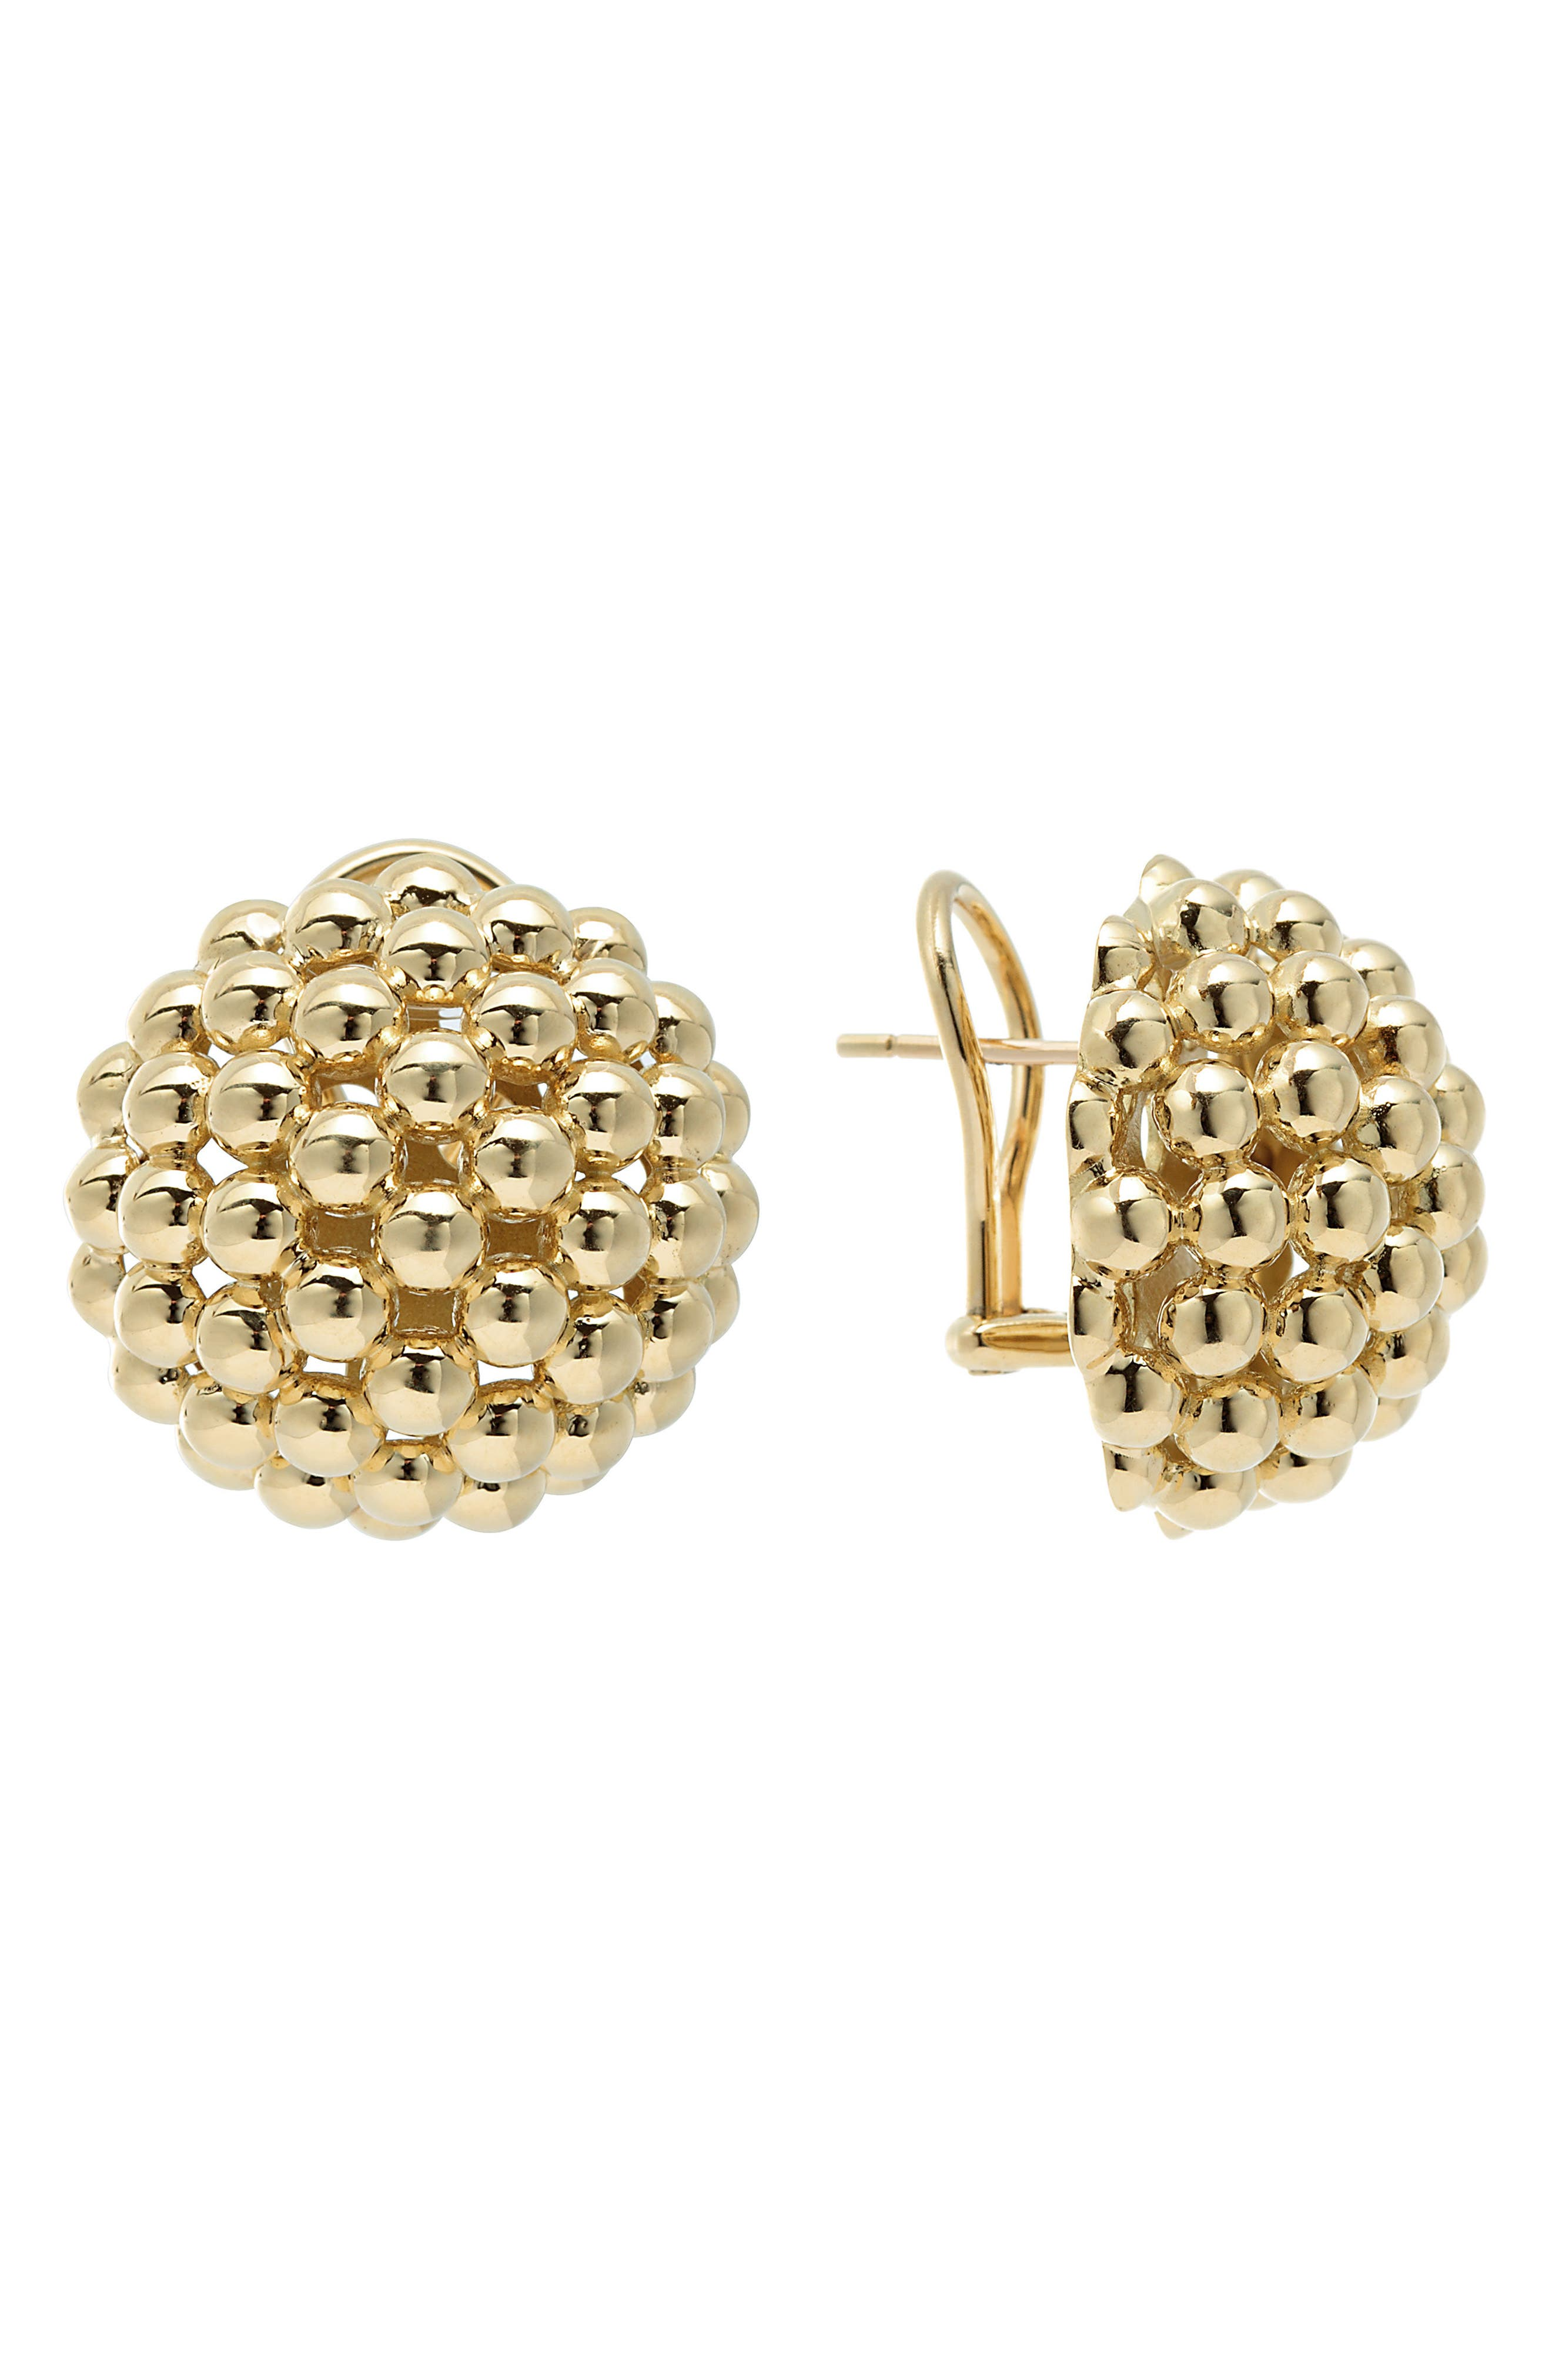 Caviar Gold Dome Omega Earrings,                             Main thumbnail 1, color,                             GOLD